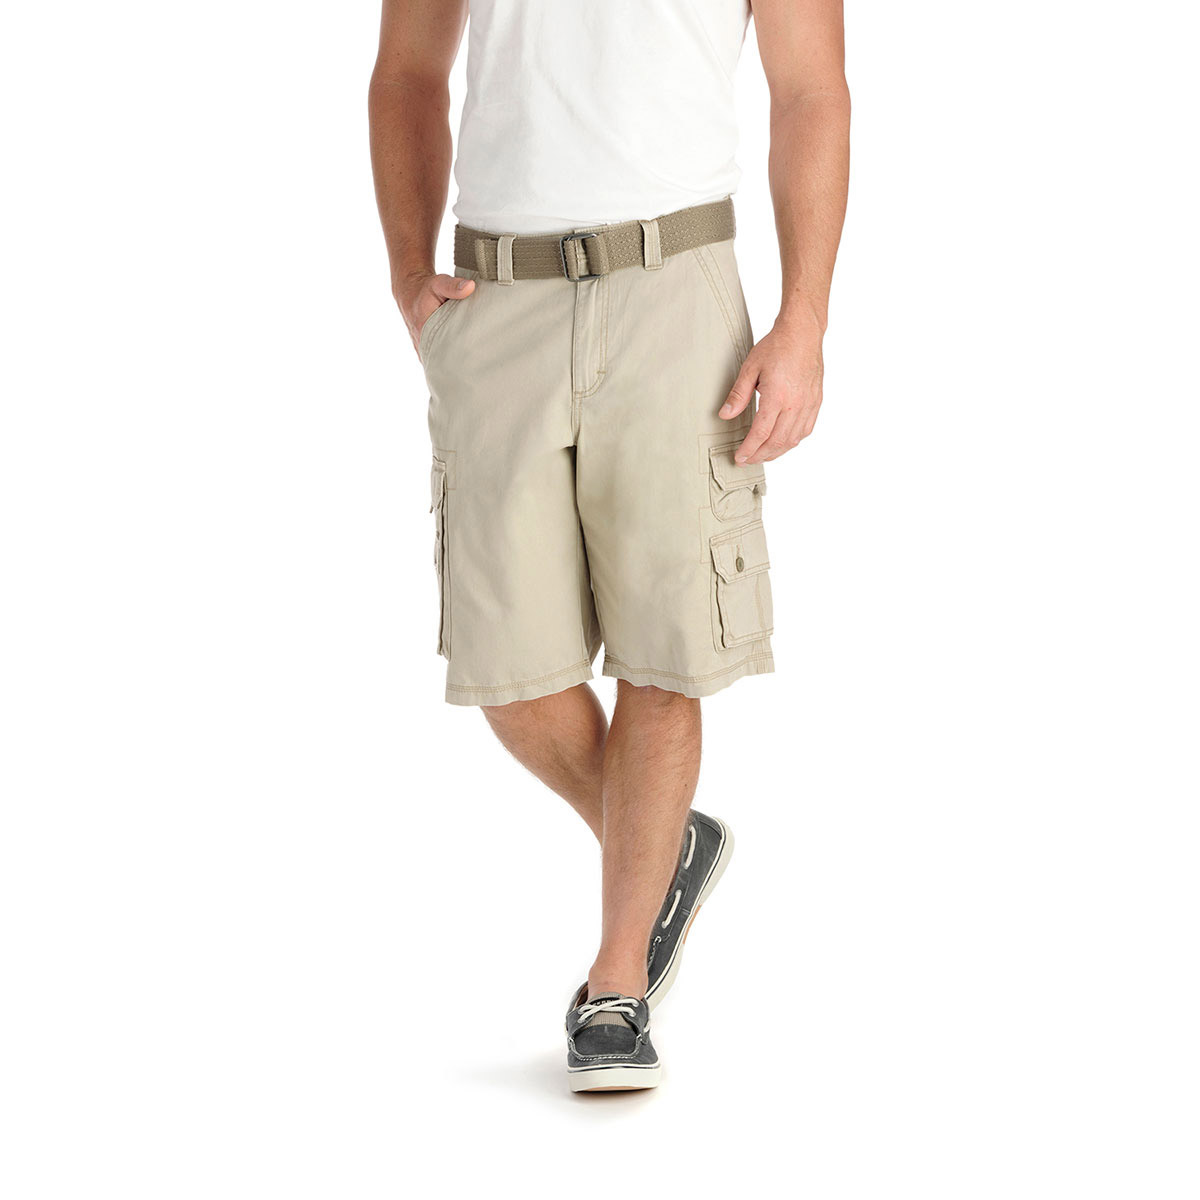 LEE Young Men's Flat Front Shorts - White, 30